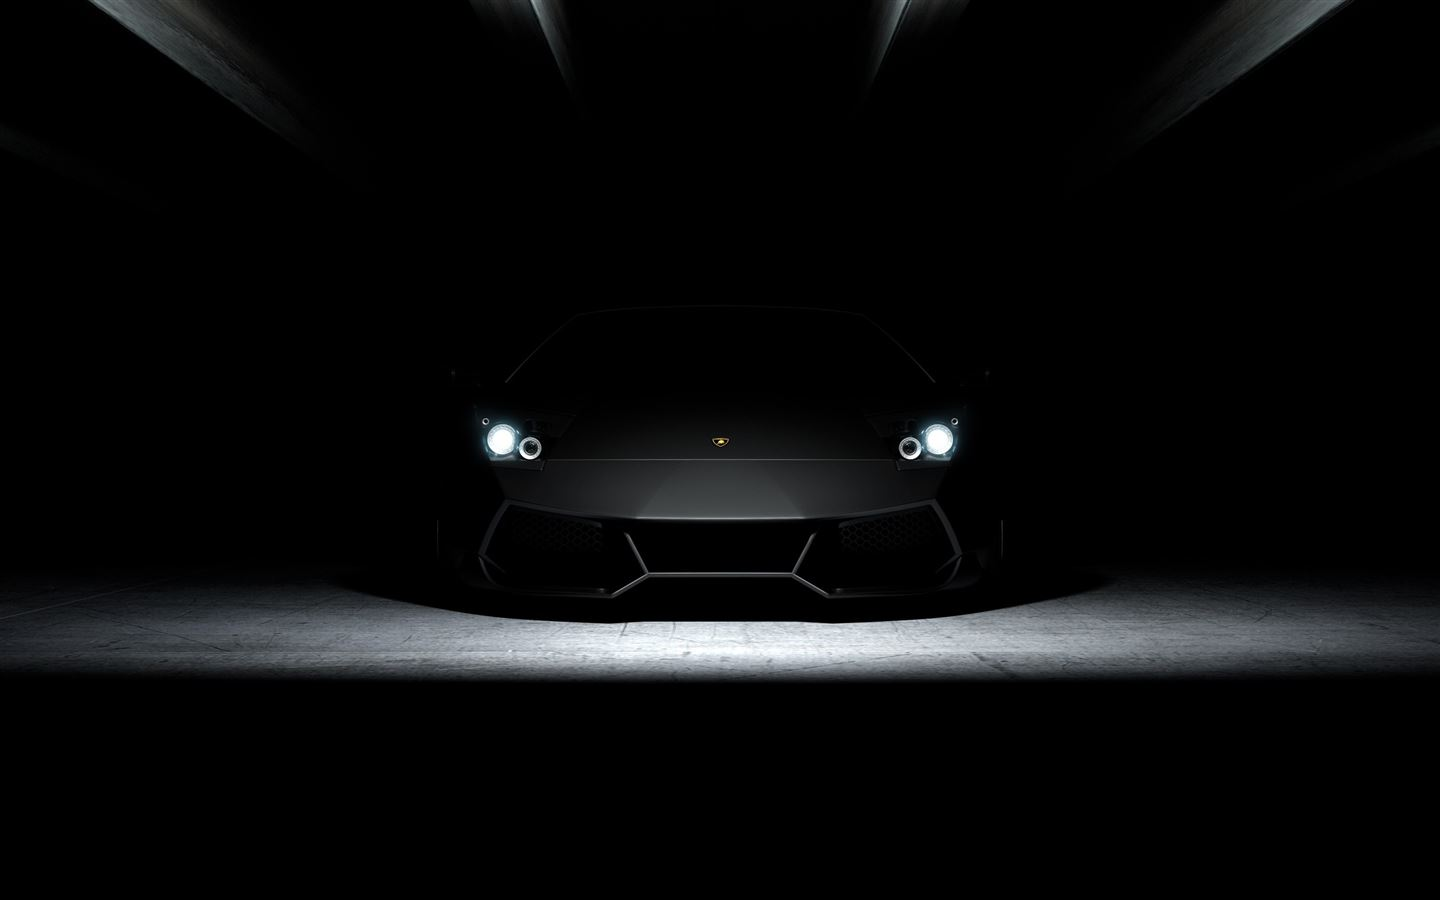 Download Wallpaper Mac Lamborghini - 994-4  Image_477454.jpg